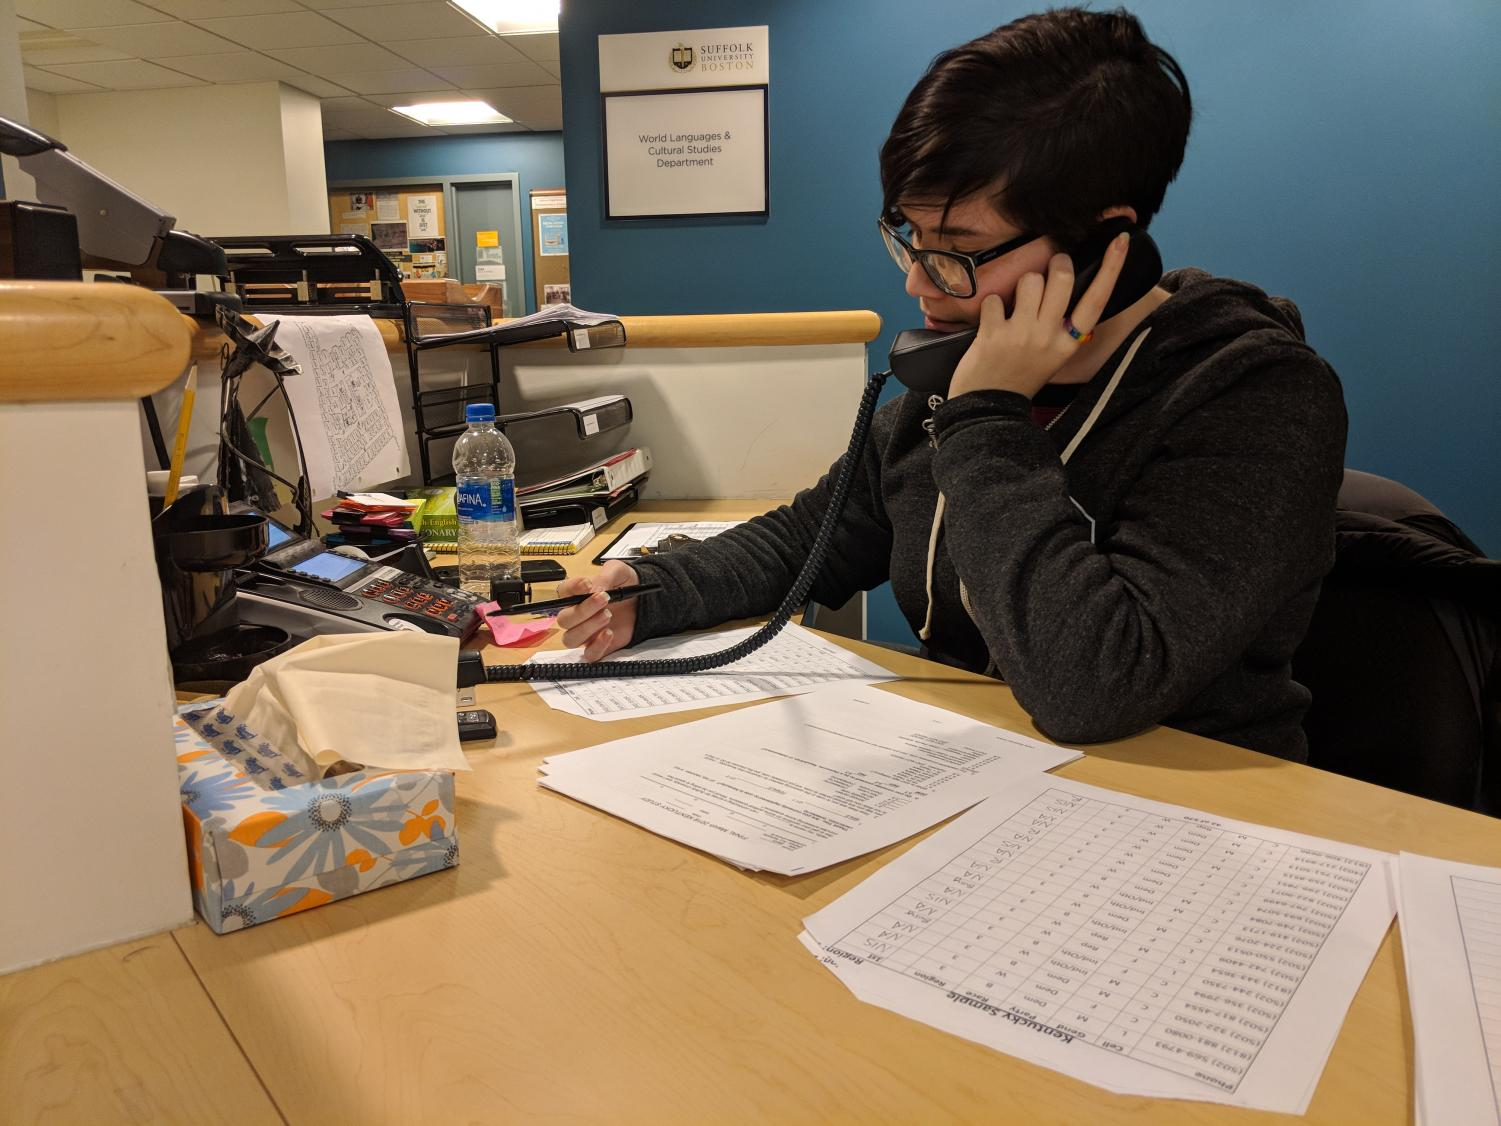 Suffolk graduate student Marissa Dakin calls one of hundreds of phone numbers to complete the class survey.